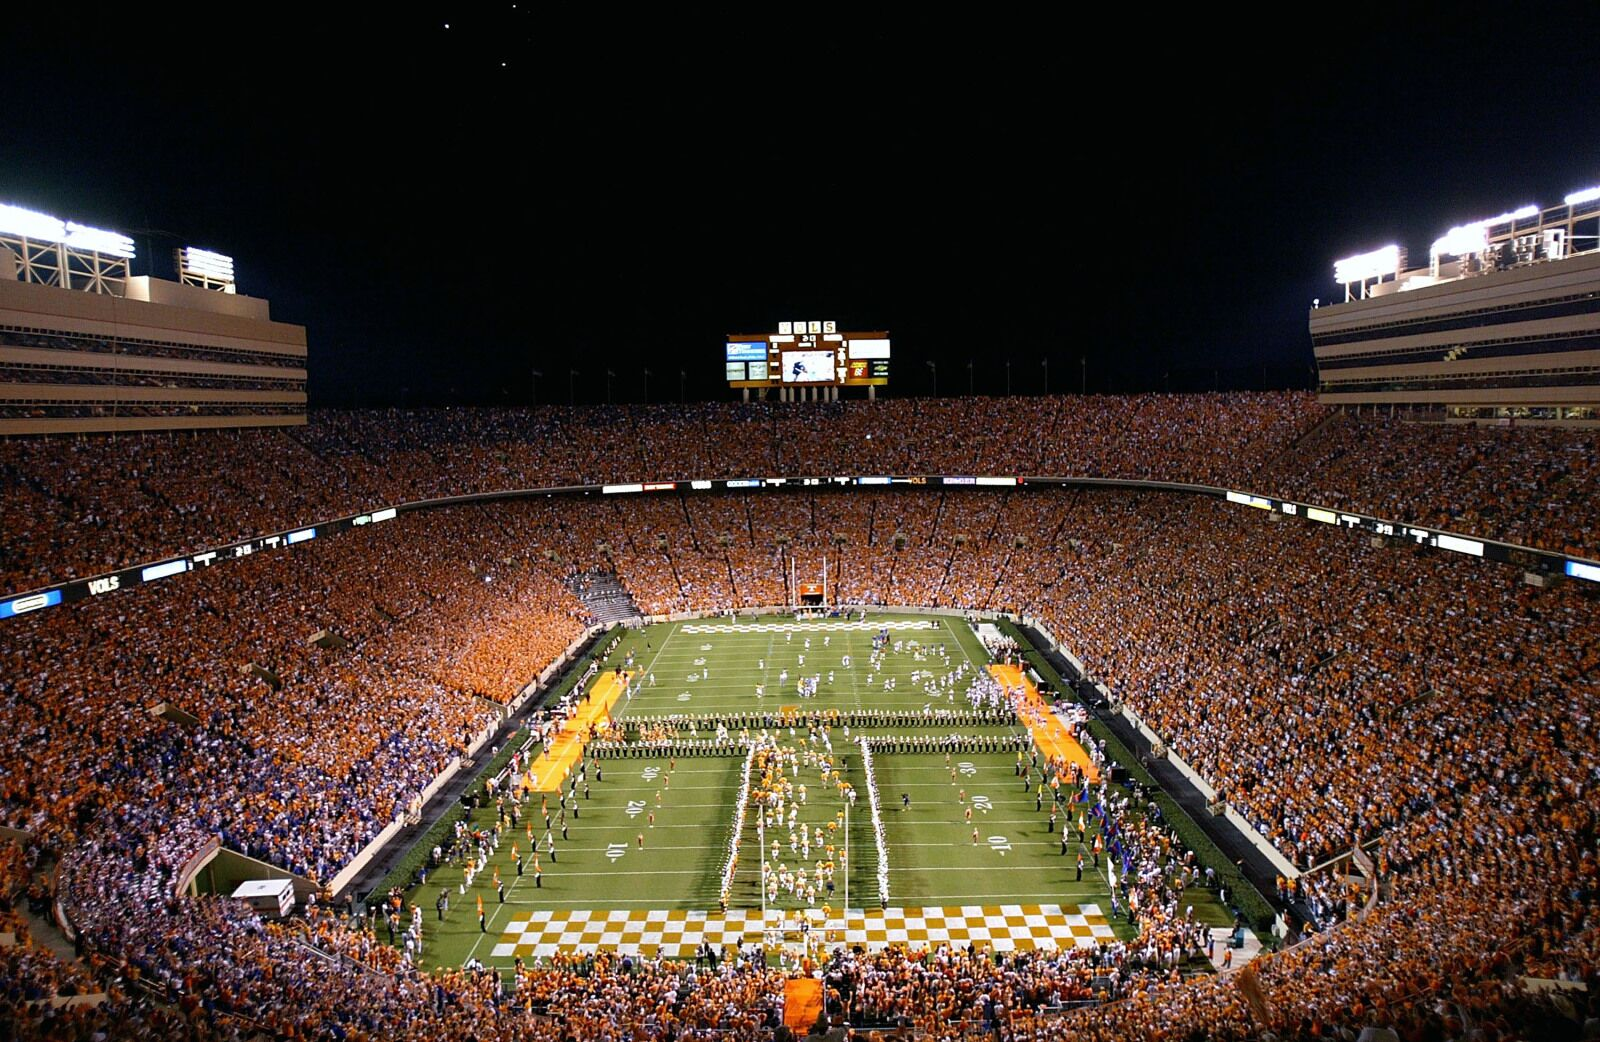 Tennessee football: Should players get one free transfer pass?